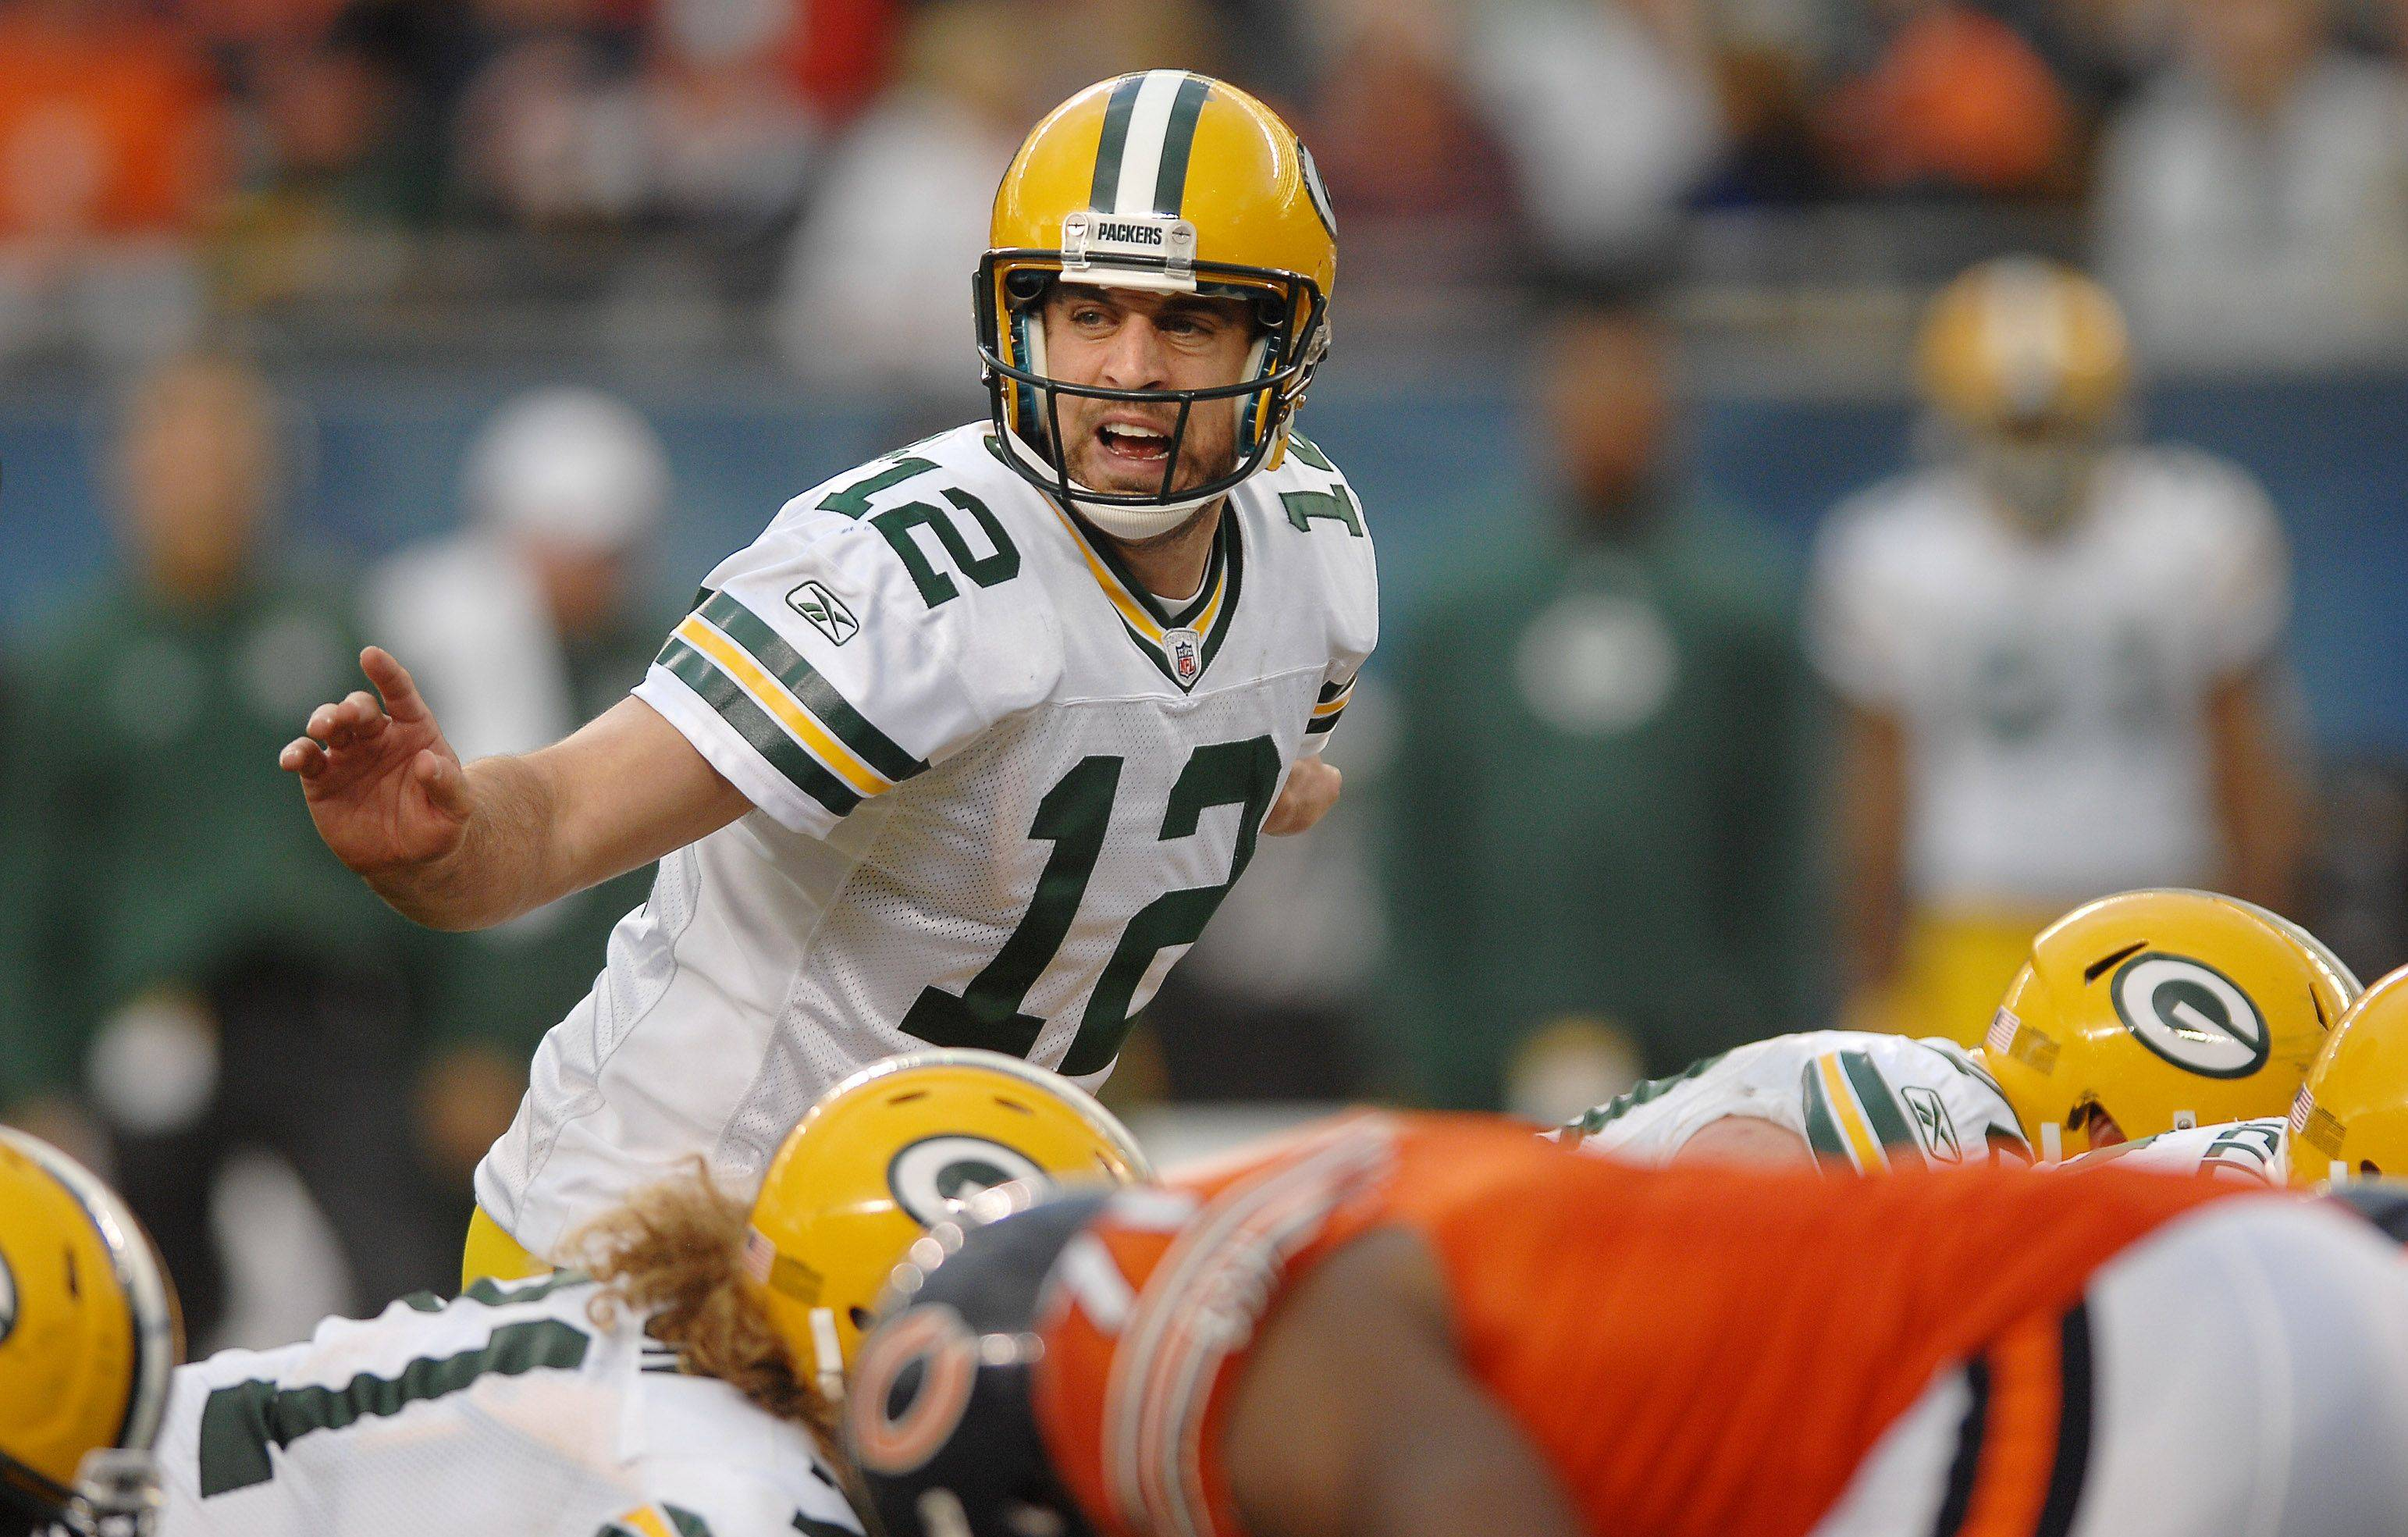 He still has a high-powered passing game, but Packers quarterback Aaron Rodgers can now hand the ball off to Cedric Benson.